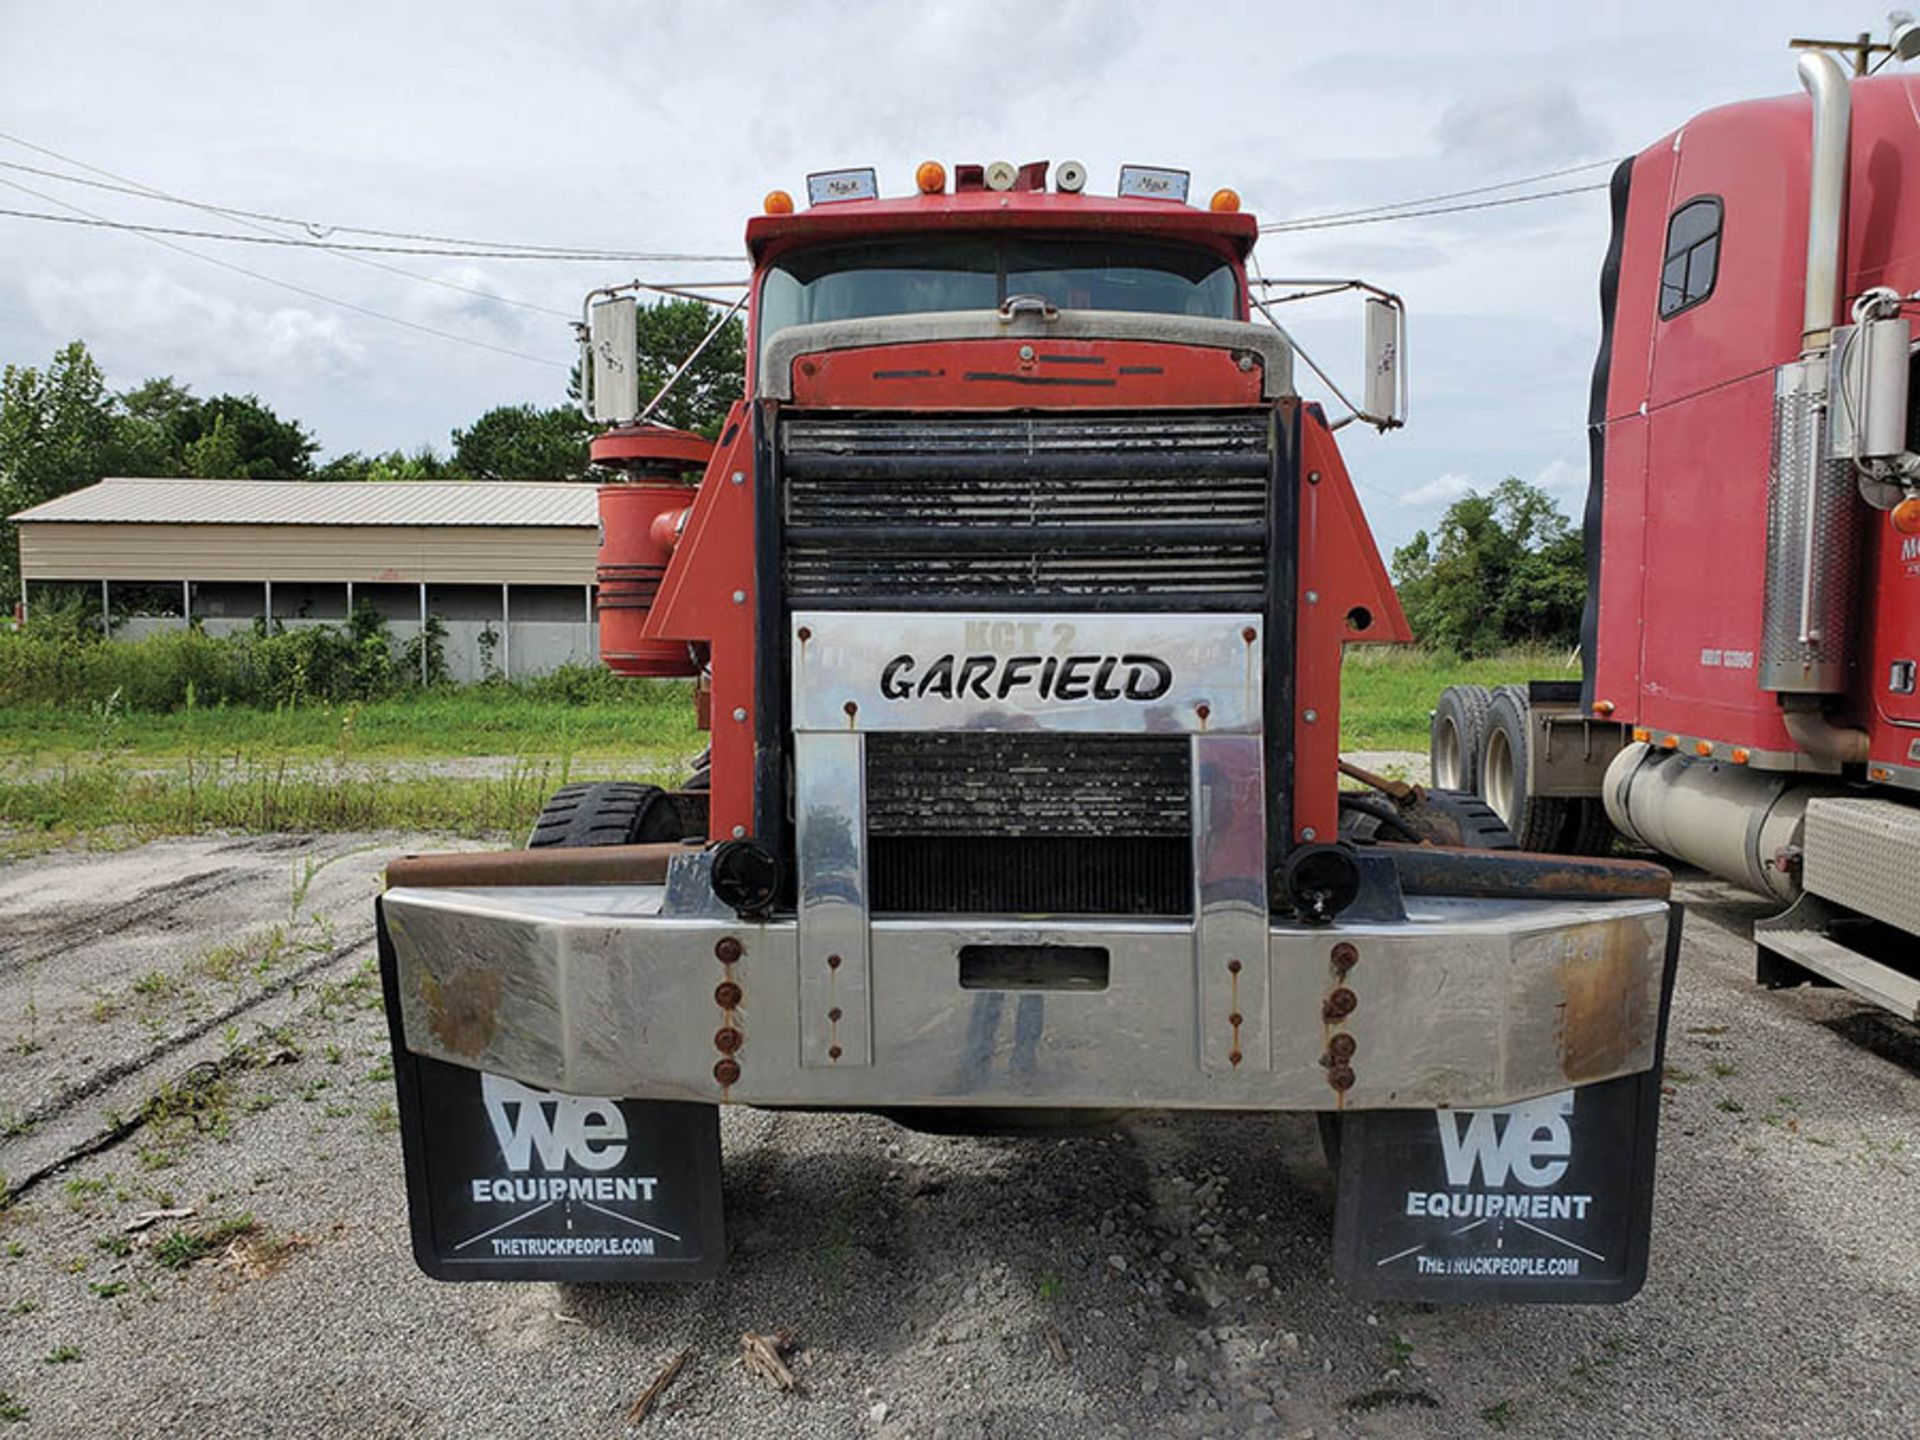 Lot 24 - MACK T/A DAY CAB TRACTOR, MACK INLINE SIX DIESEL ENGINE, KCT 2, LOCATION: MARCO SHOP